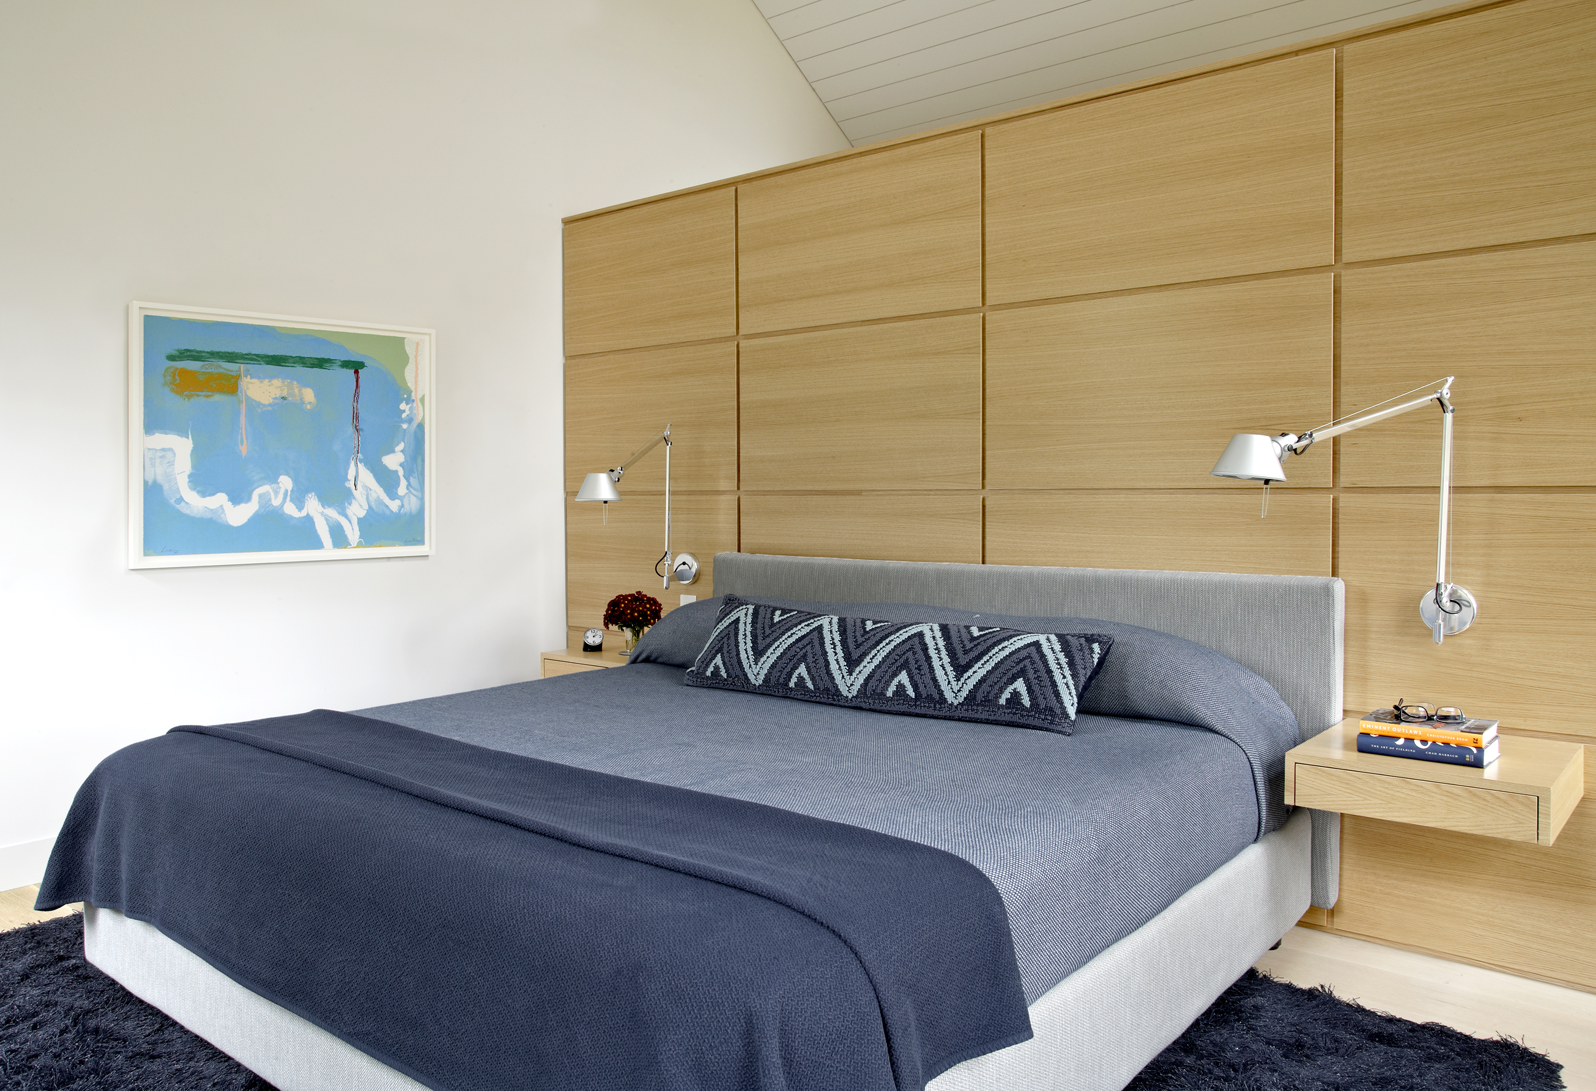 Modern Minimalist Bedroom With Platform Bed (View 6 of 23)